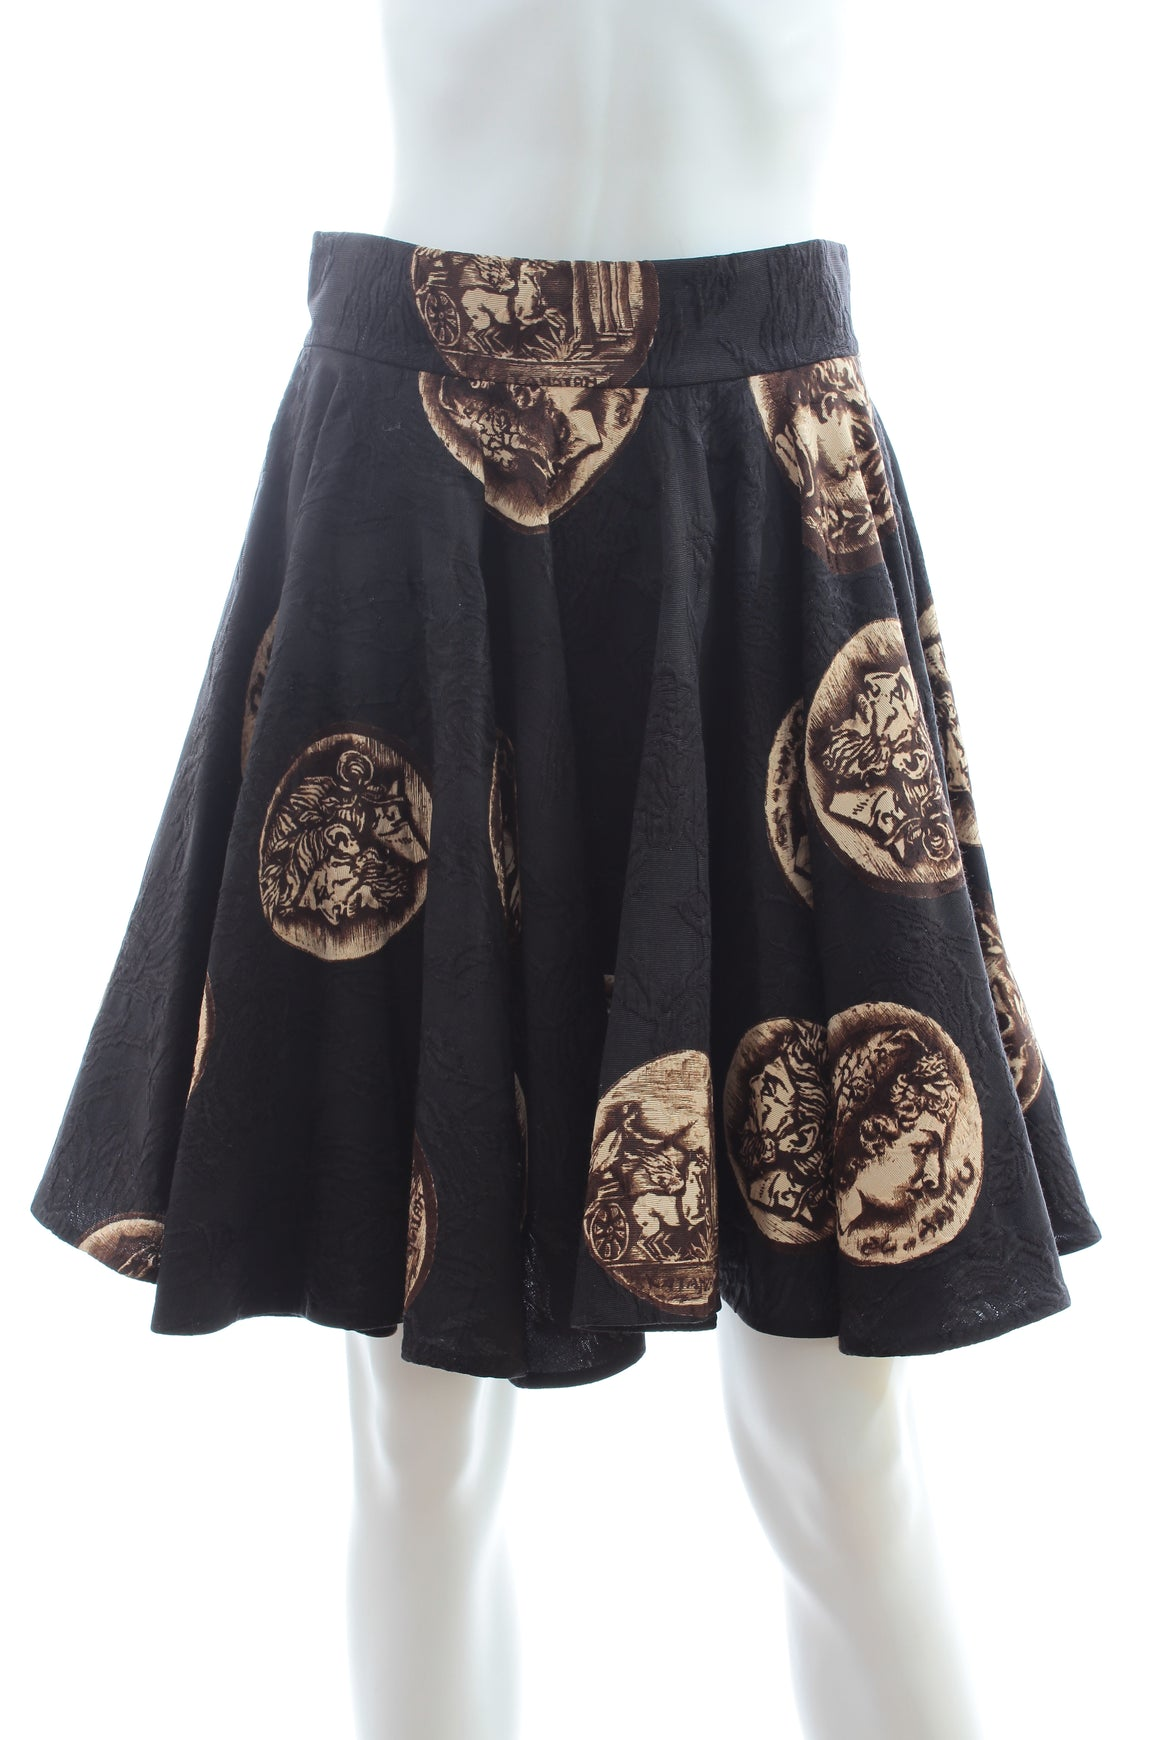 Dolce & Gabbana Coin Printed Textured Pleated Skirt